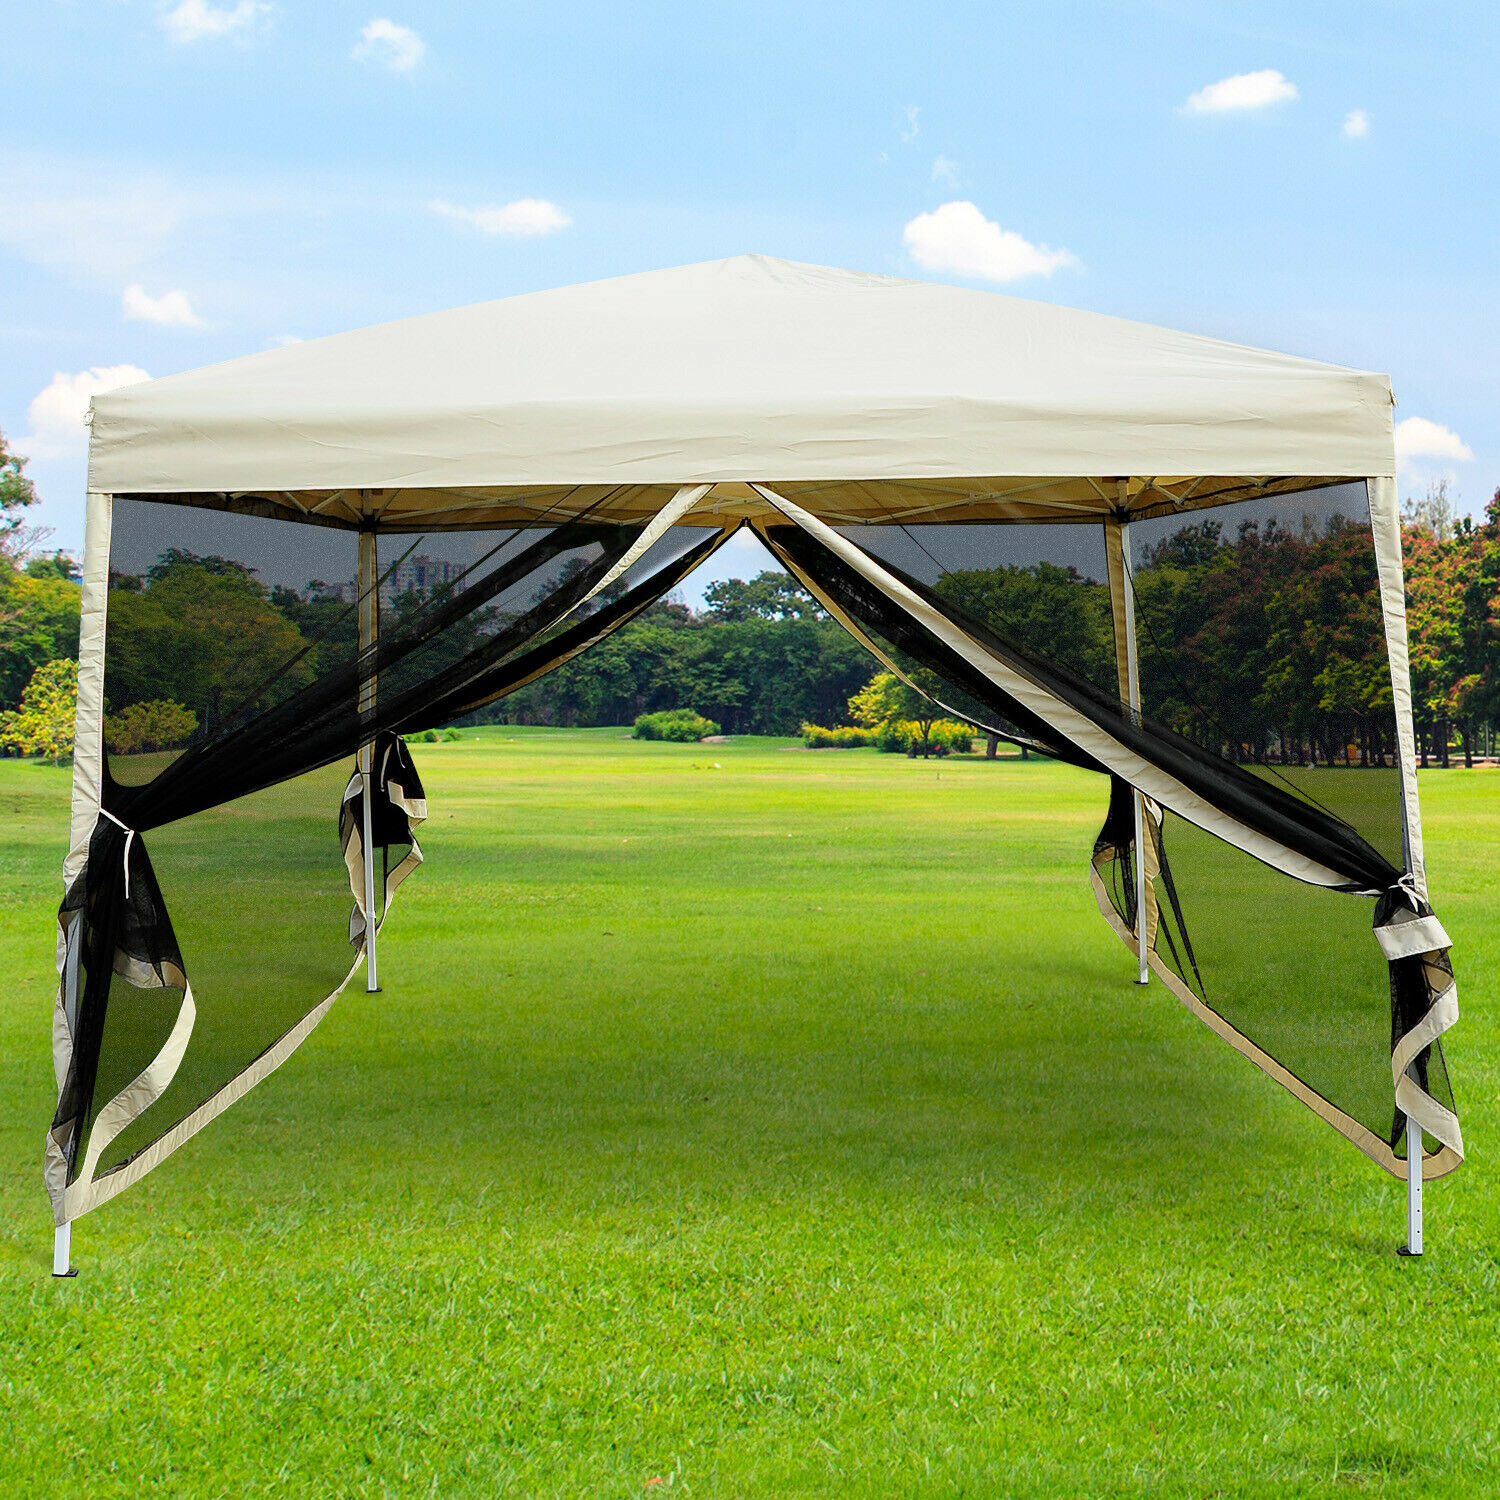 Delicieux 10u0027x10u0027 Outdoor Pop Up Party Tent Patio Gazebo Canopy Mosquito Net Shade  Tan 1 Of 10FREE Shipping See More